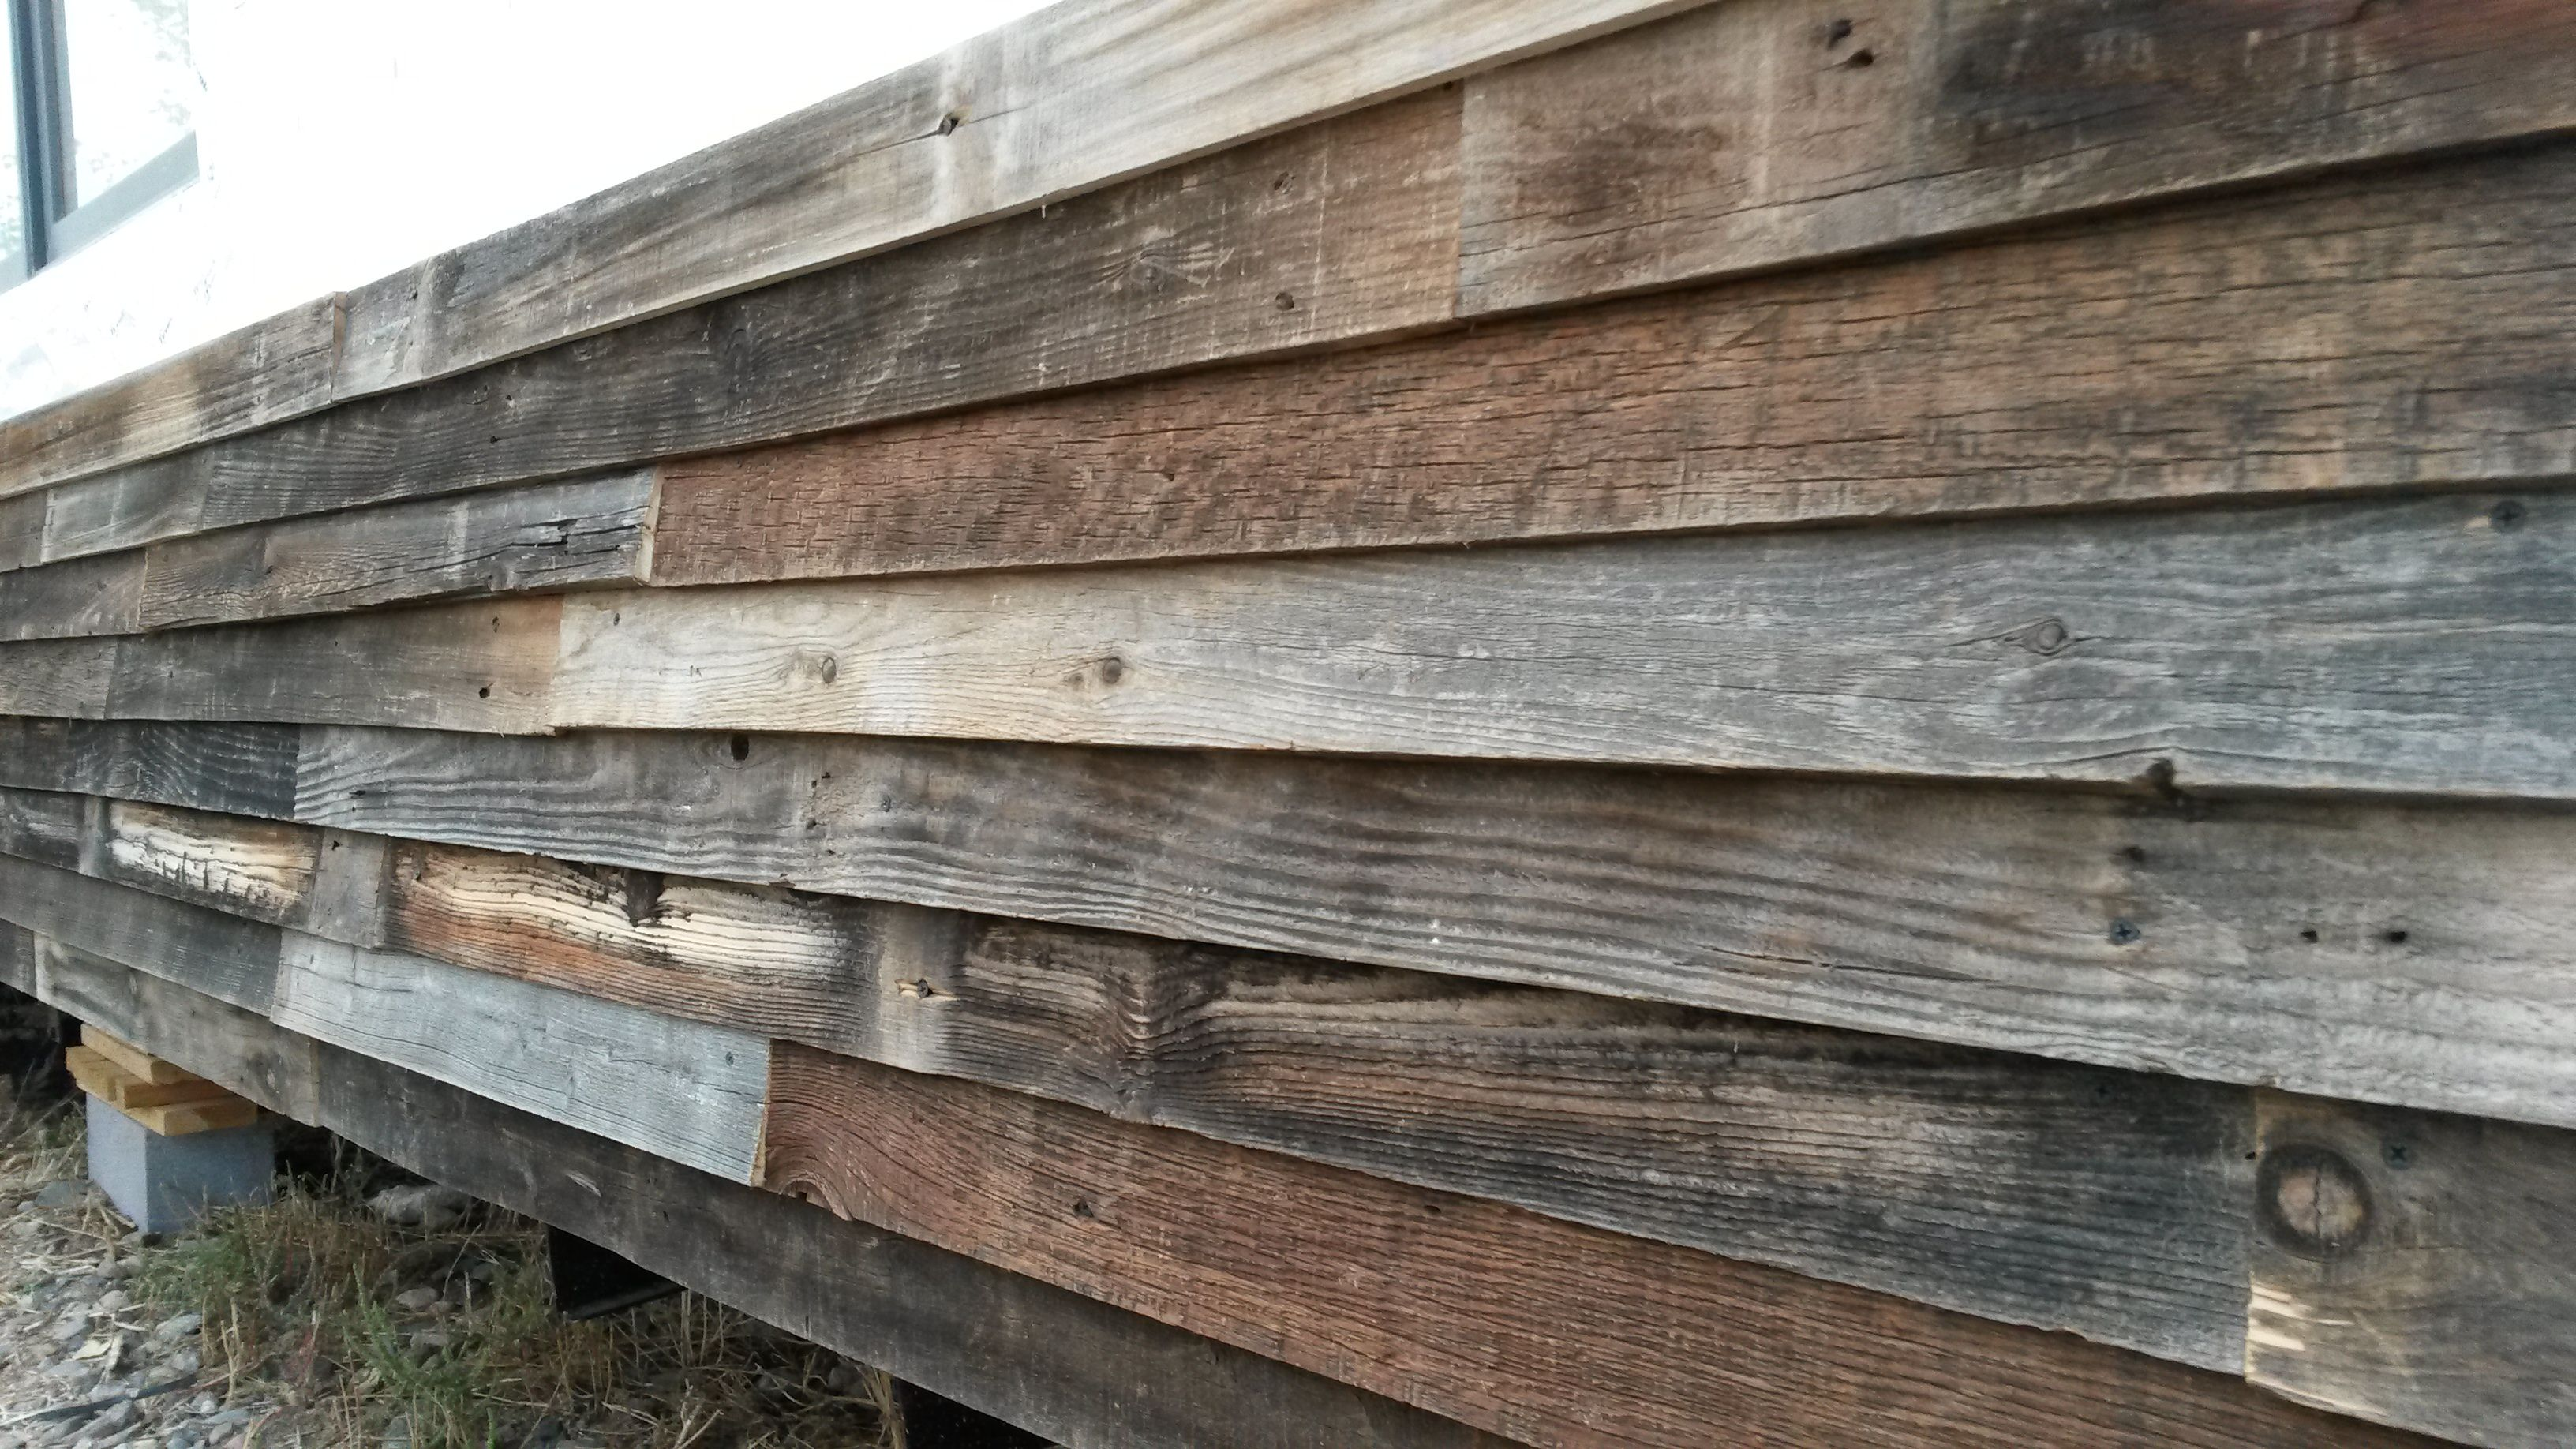 Use Old Fence Boards For Siding As Long As The Surface Below Is Properly Sheathed Cedar Fence Boards Old Fence Boards Old Fences